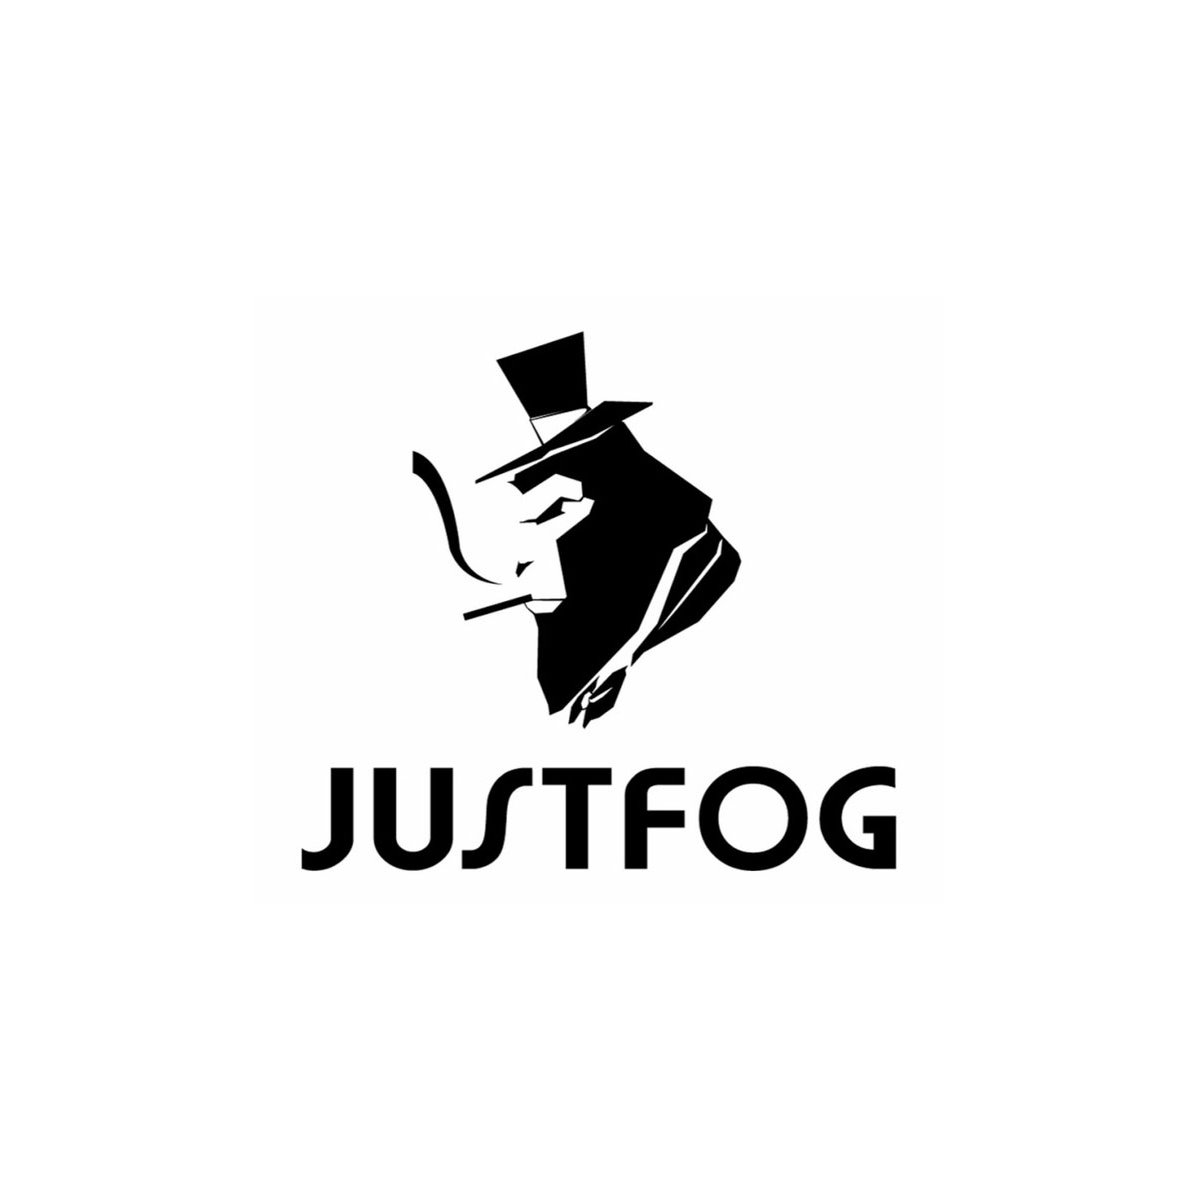 JUSTFOG fabricant